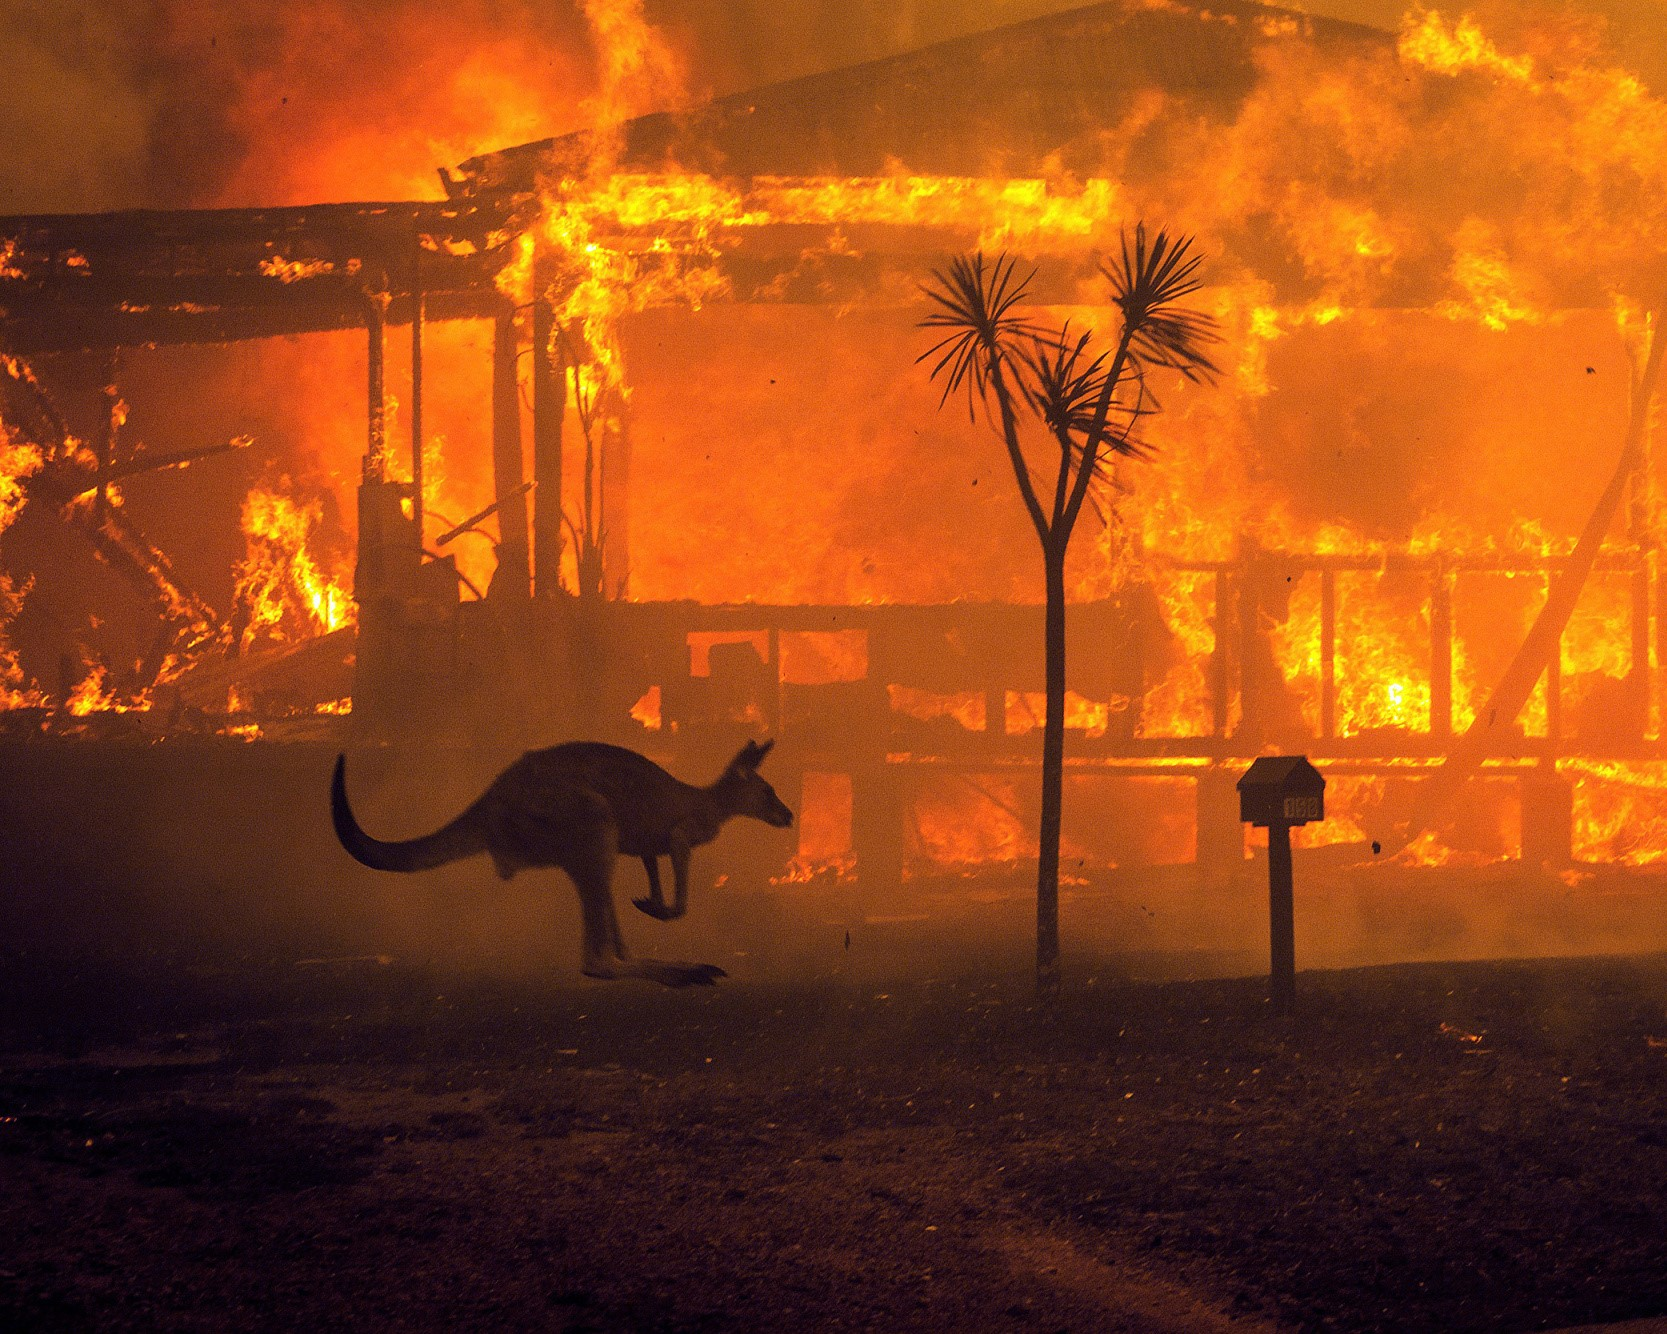 KELVIN'S BLOG: Fighting fire in a changing climate